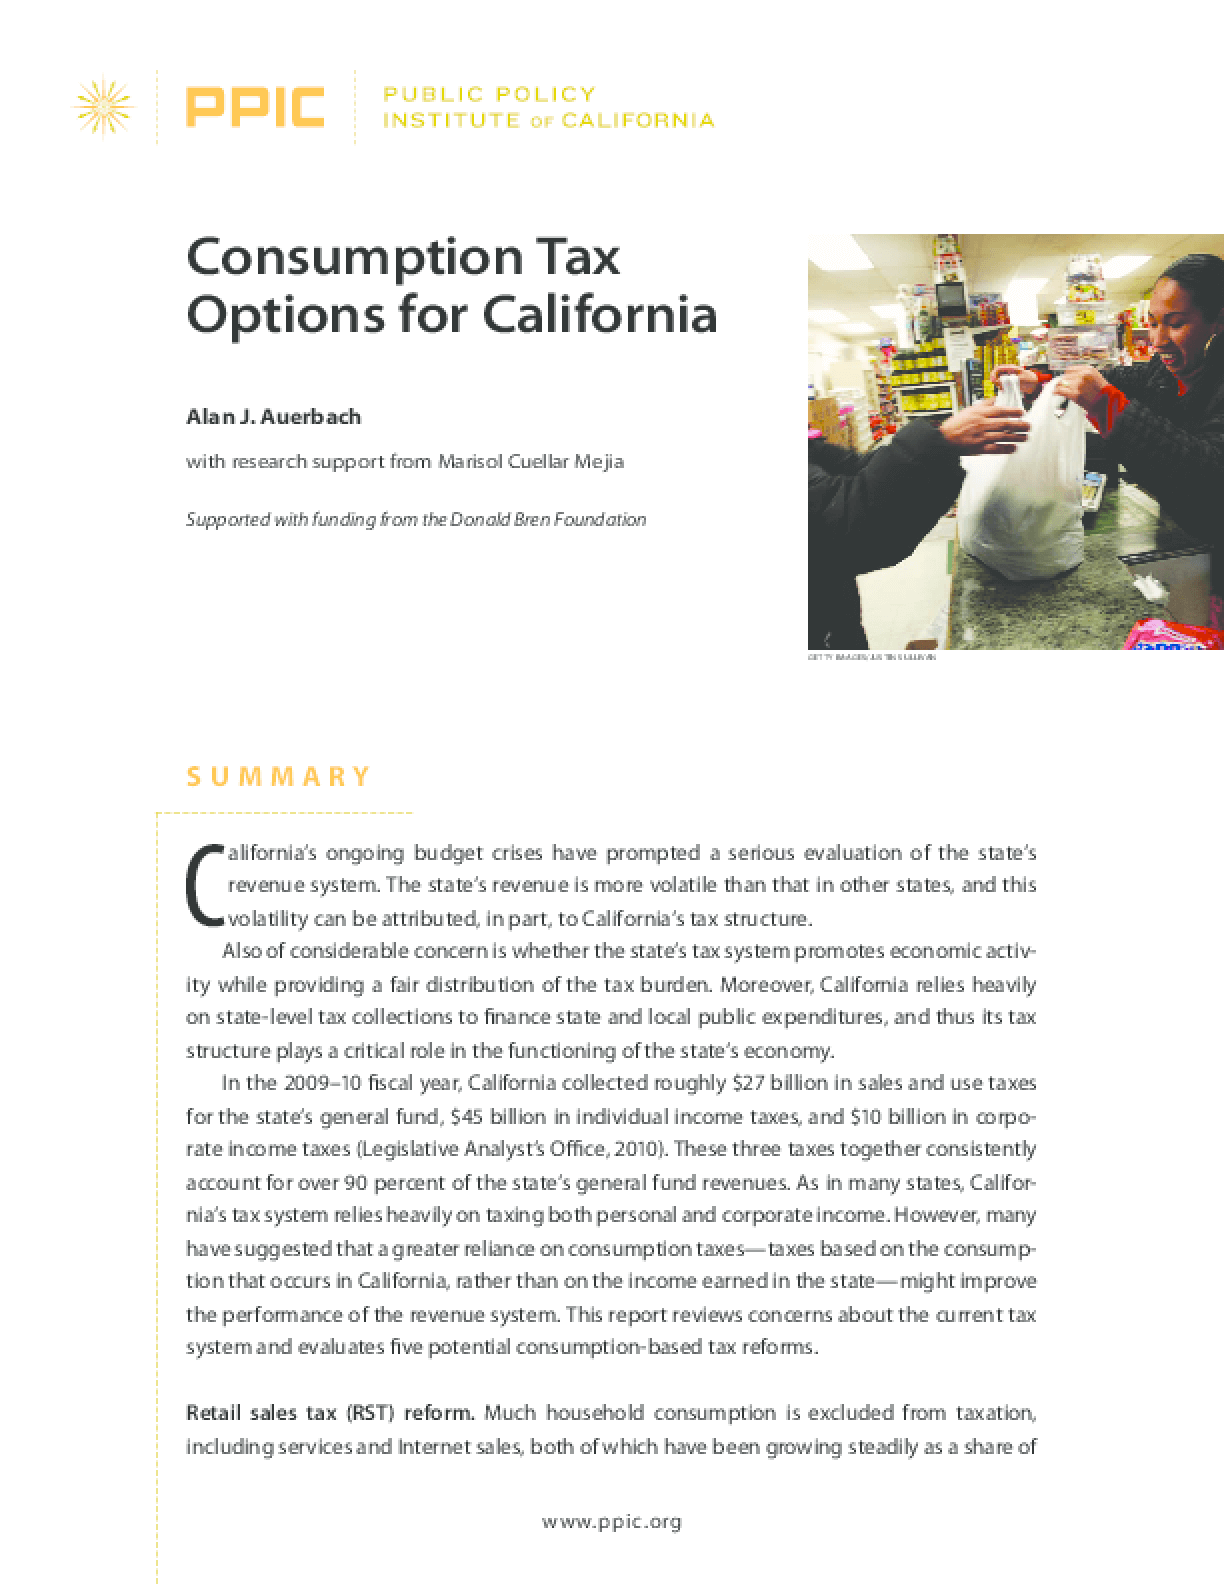 Consumption Tax Options for California